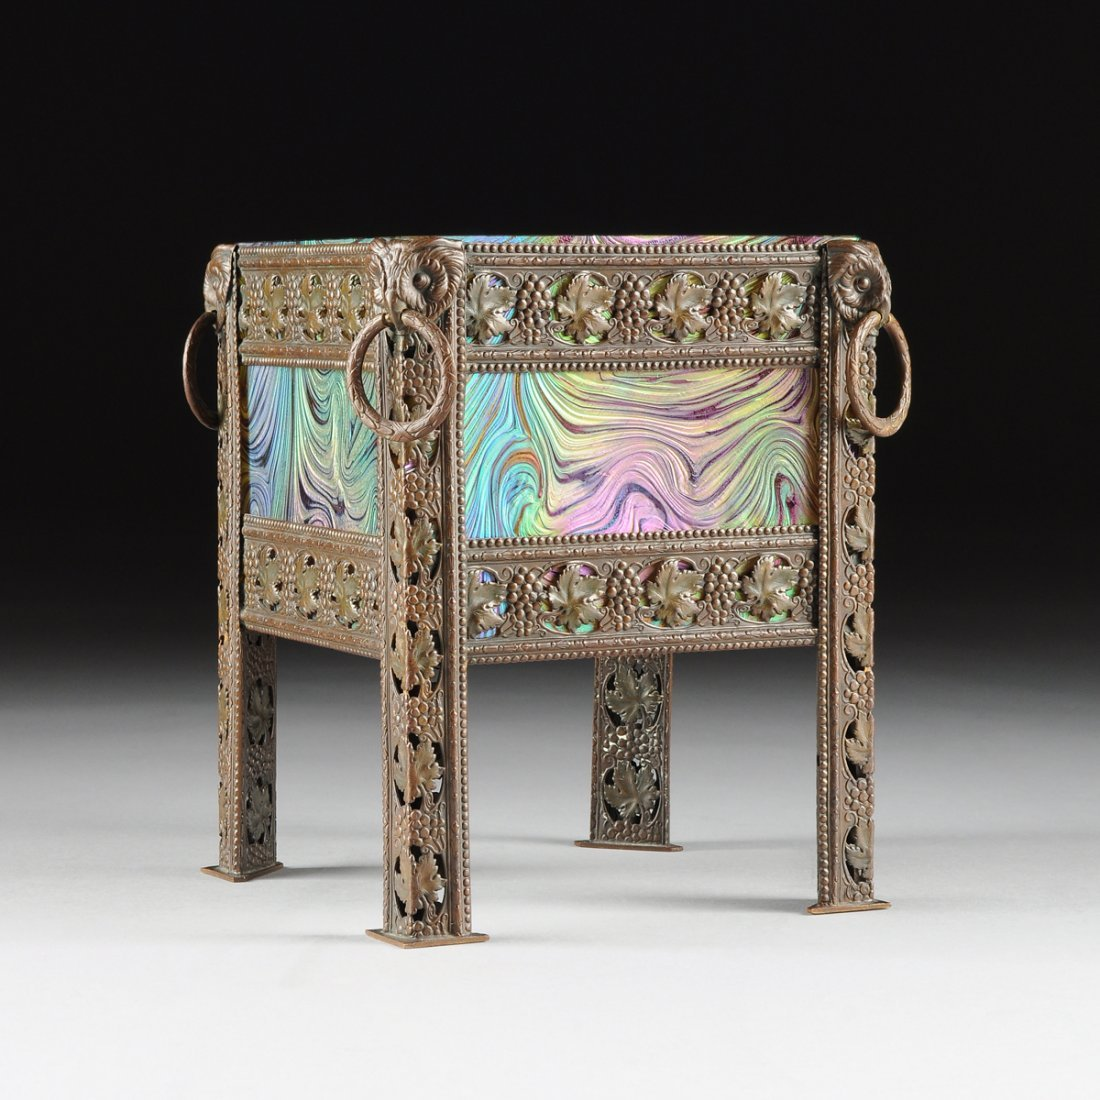 A VIENNA SECESSIONIST STYLE PATINATED REPOUSSE BRONZE